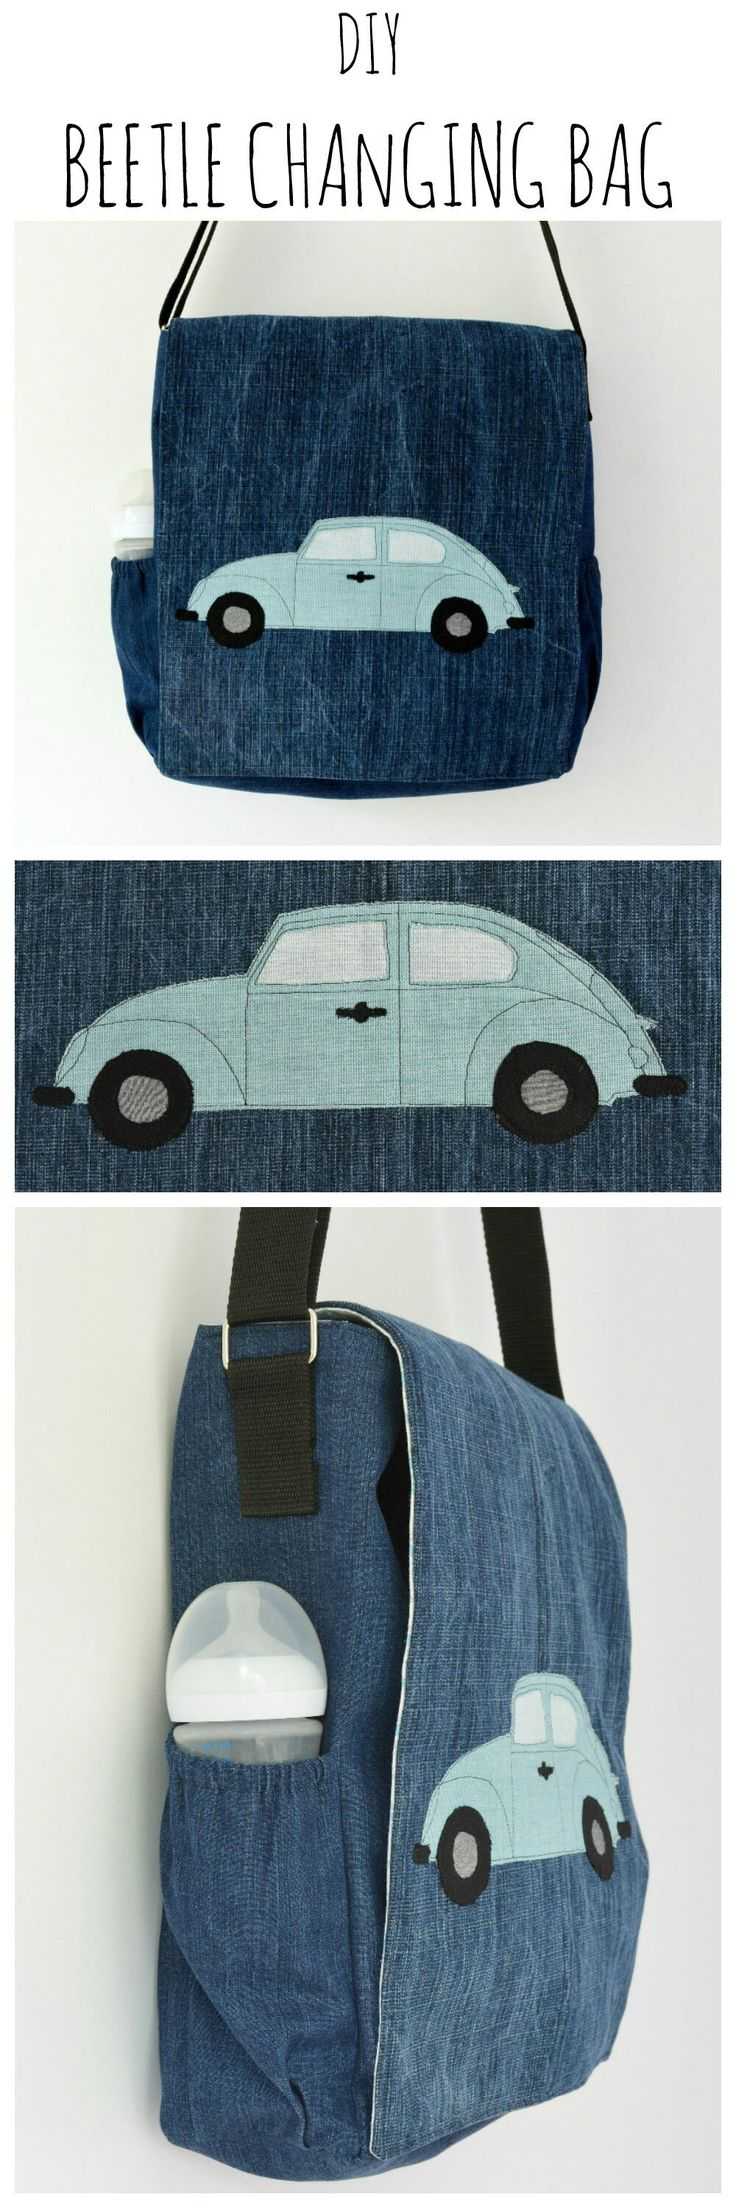 "Creating your own applique design is a great way of personalizing your bag. Find a full tutorial for the beetle car changing bag here and visit the collaborative board ""DIY bloggers for Volkswagen"" for more inspiring DIY instructions and ideas: http://www.pinterest.com/volkswagen/diy-bloggers-for-volkswagen:"